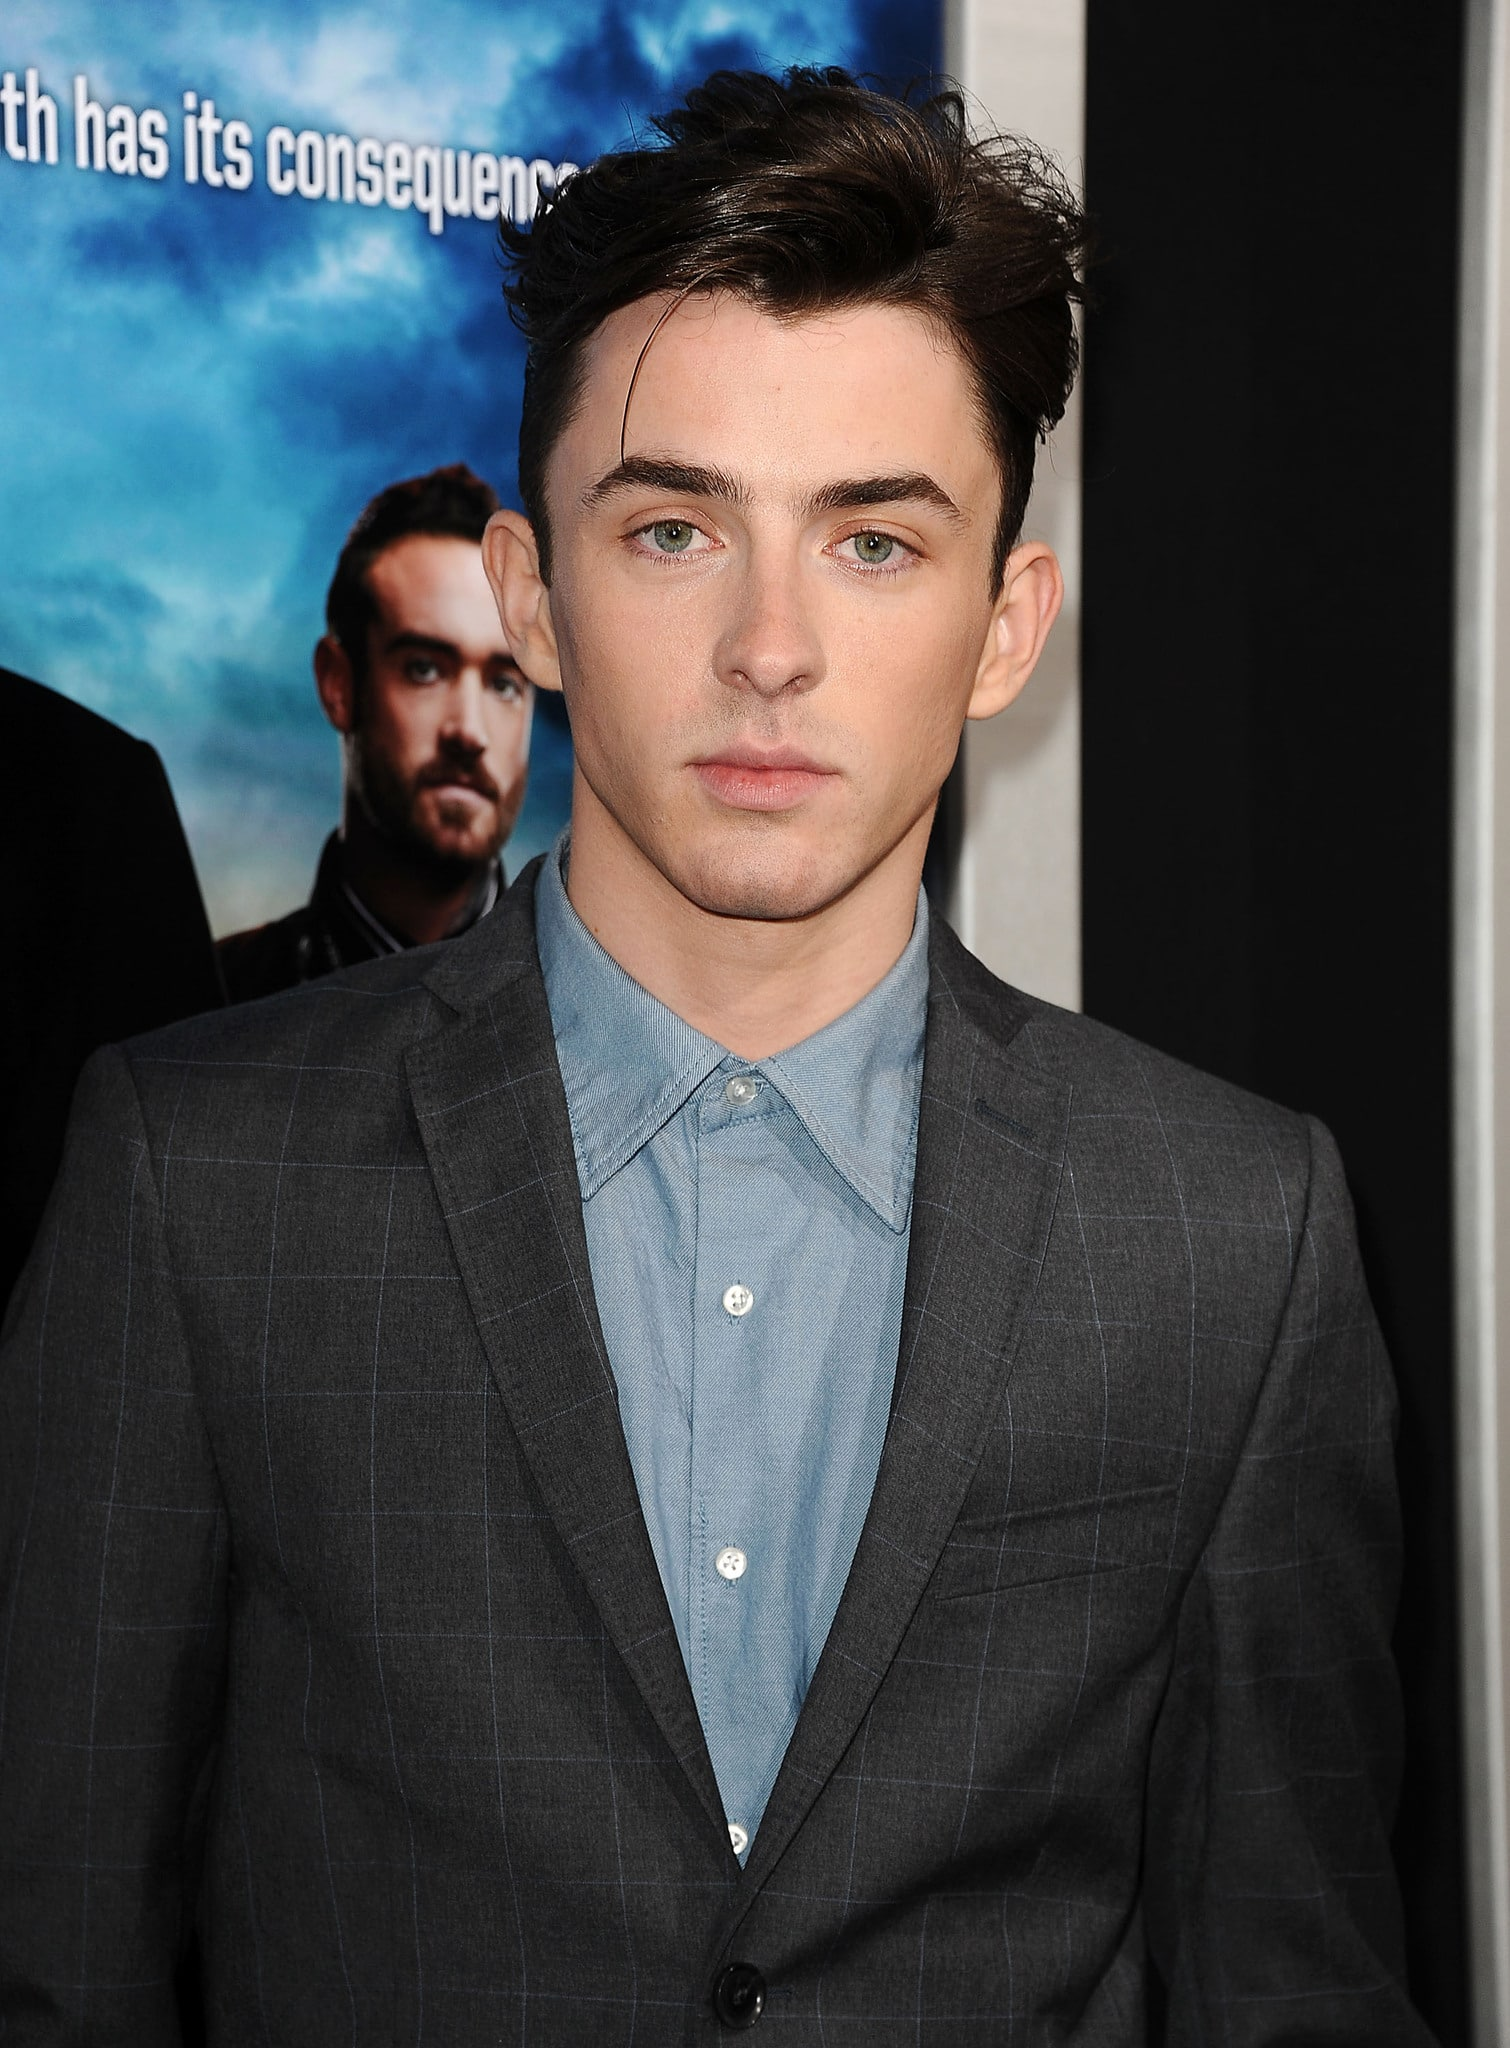 Matthew Beard English Actor, Model